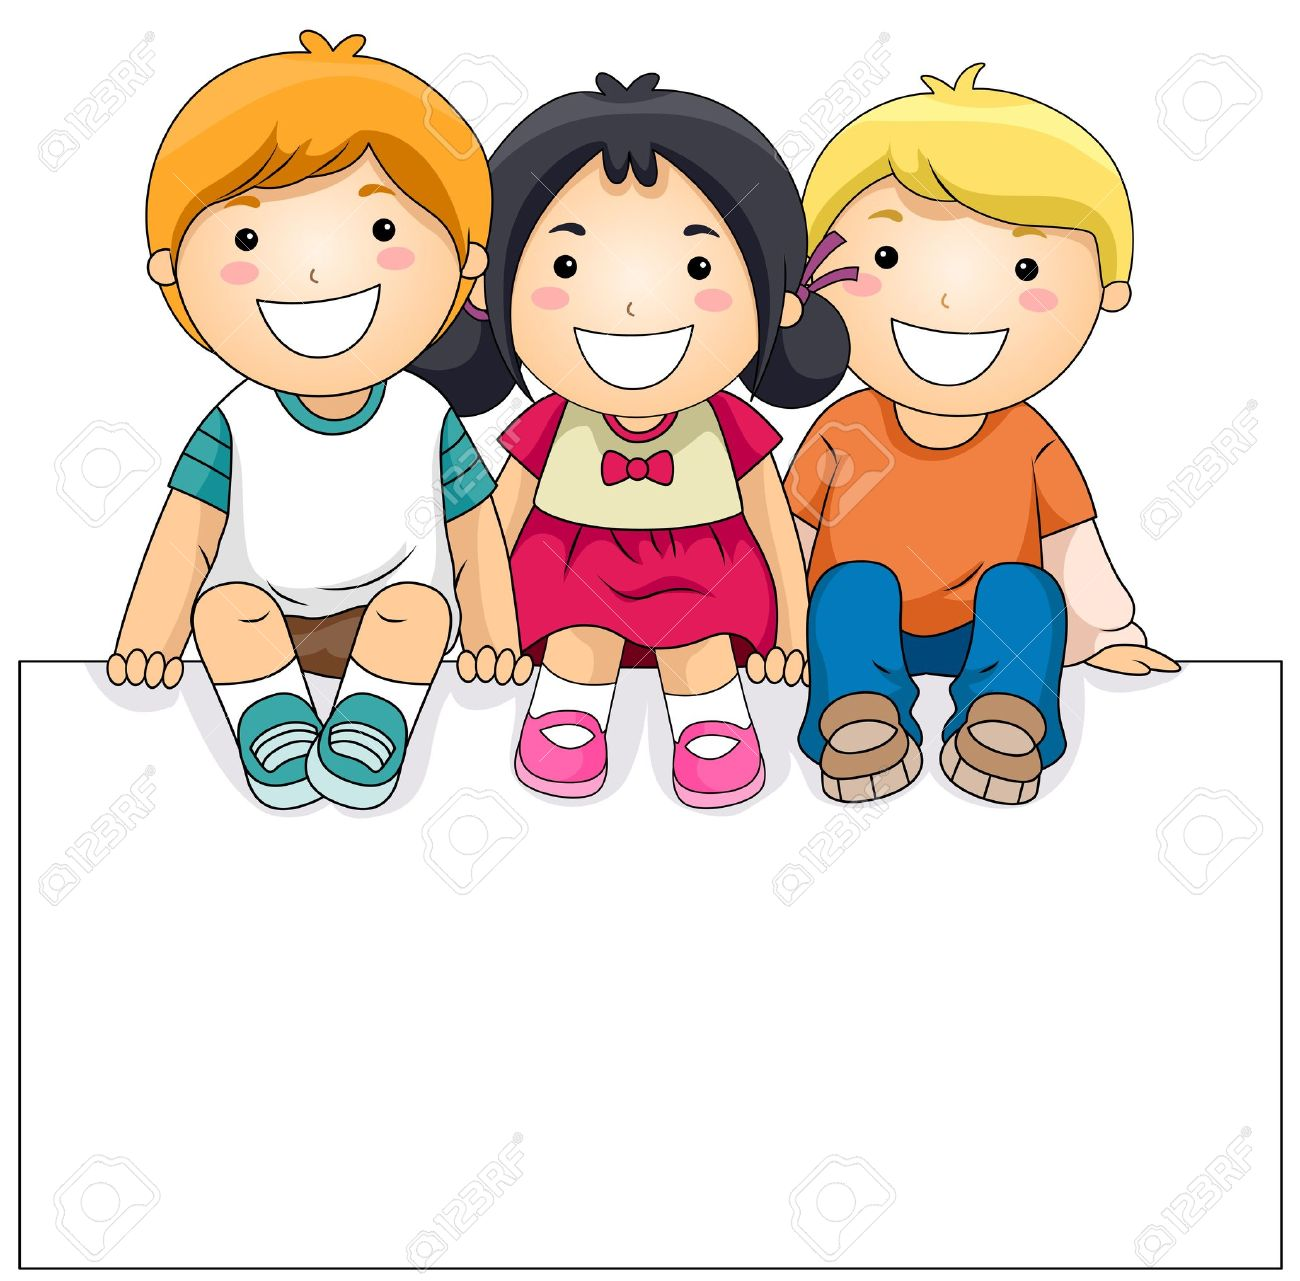 picture freeuse download Clipart kids. Children with a panda